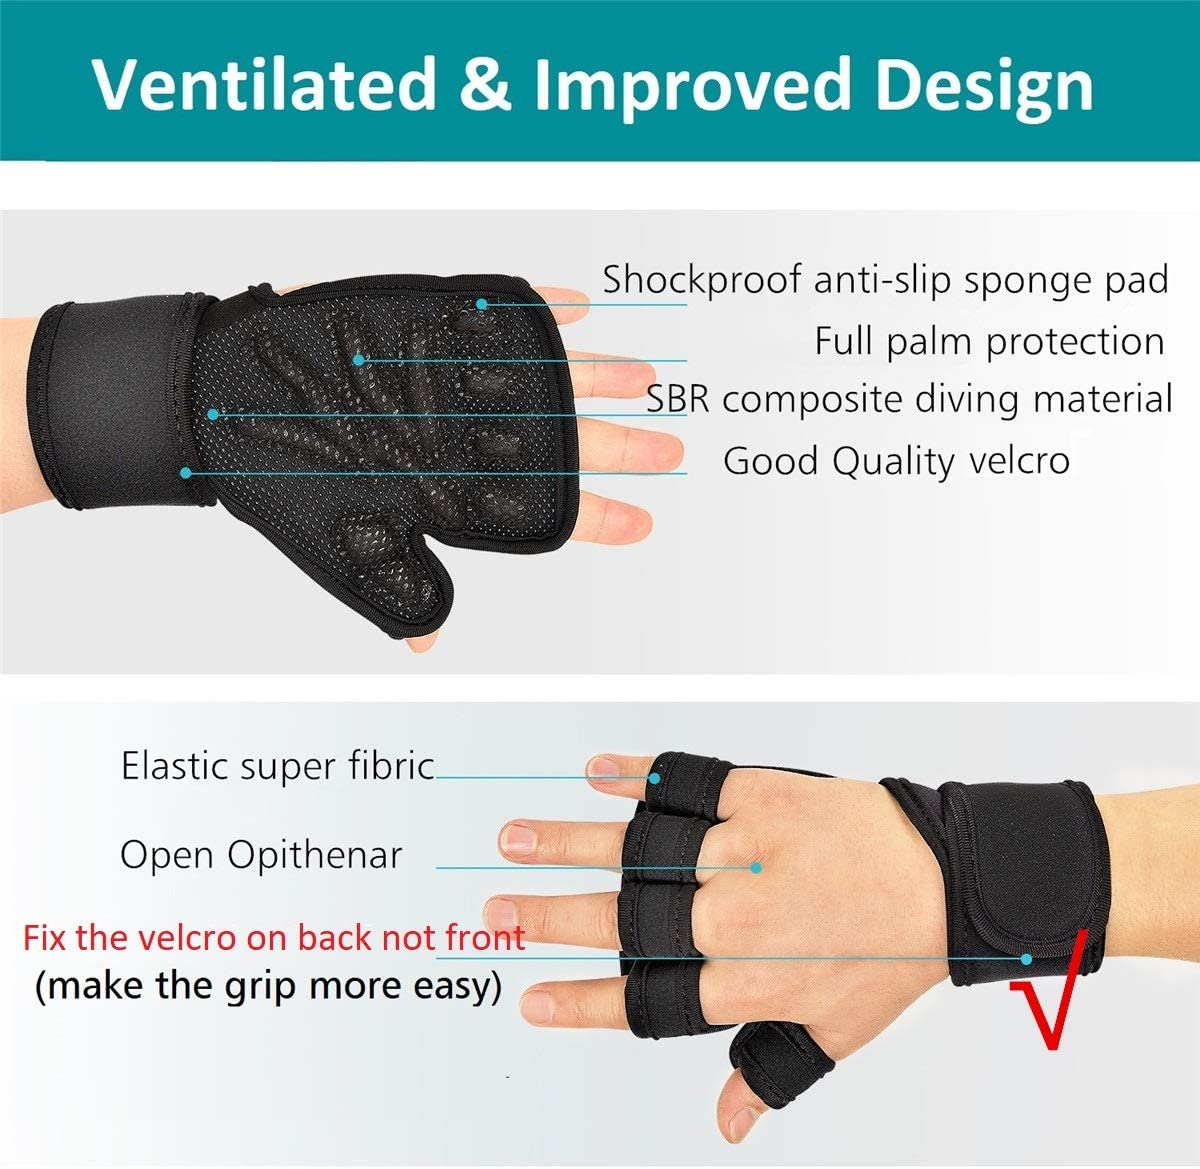 Extra Grip Fitness Pull Ups for Gym Men and Women didaINT Updated Ventilated Weight Lifting Gloves Full Palm Protection Weightlifting Workout Gloves with Wrist Wraps Crossfit